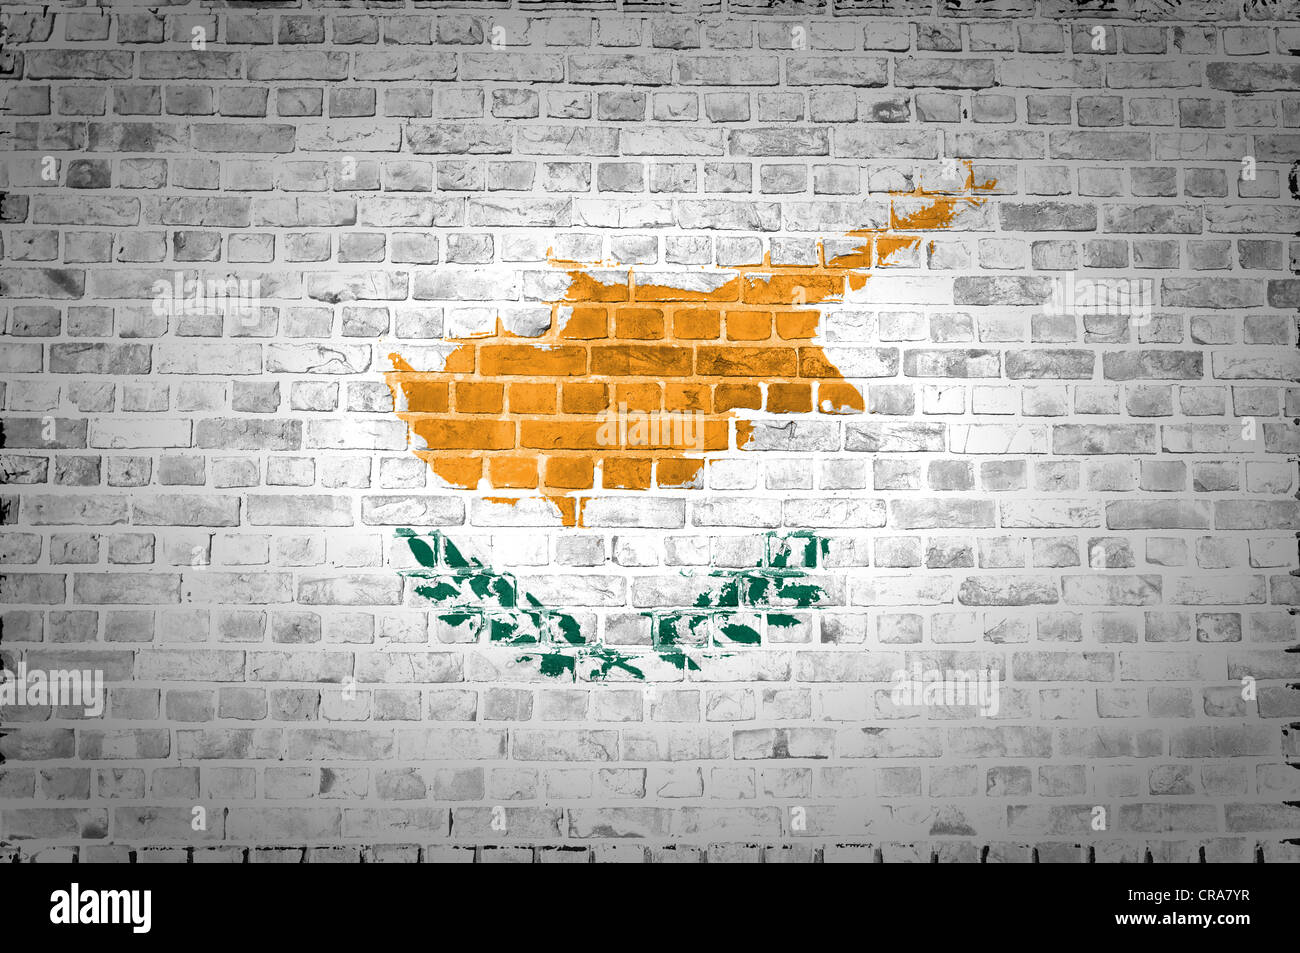 An image of the Cyprus flag painted on a brick wall in an urban location - Stock Image